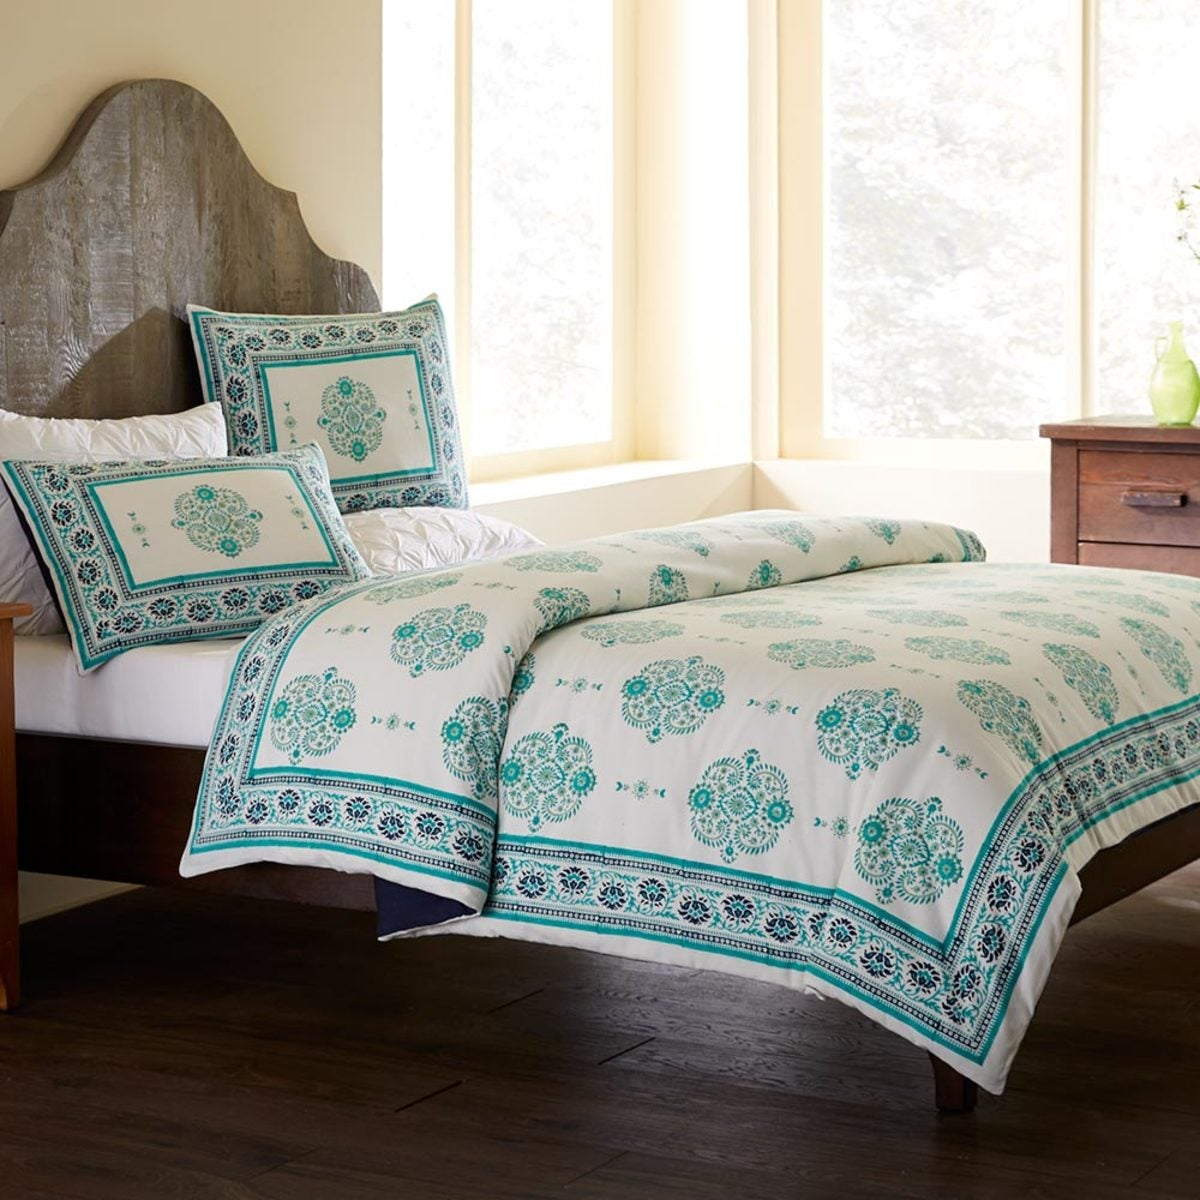 Aqua & Teal Paisley Block Print Duvet and Pillow Shams Set - Full/Queen - Aqua